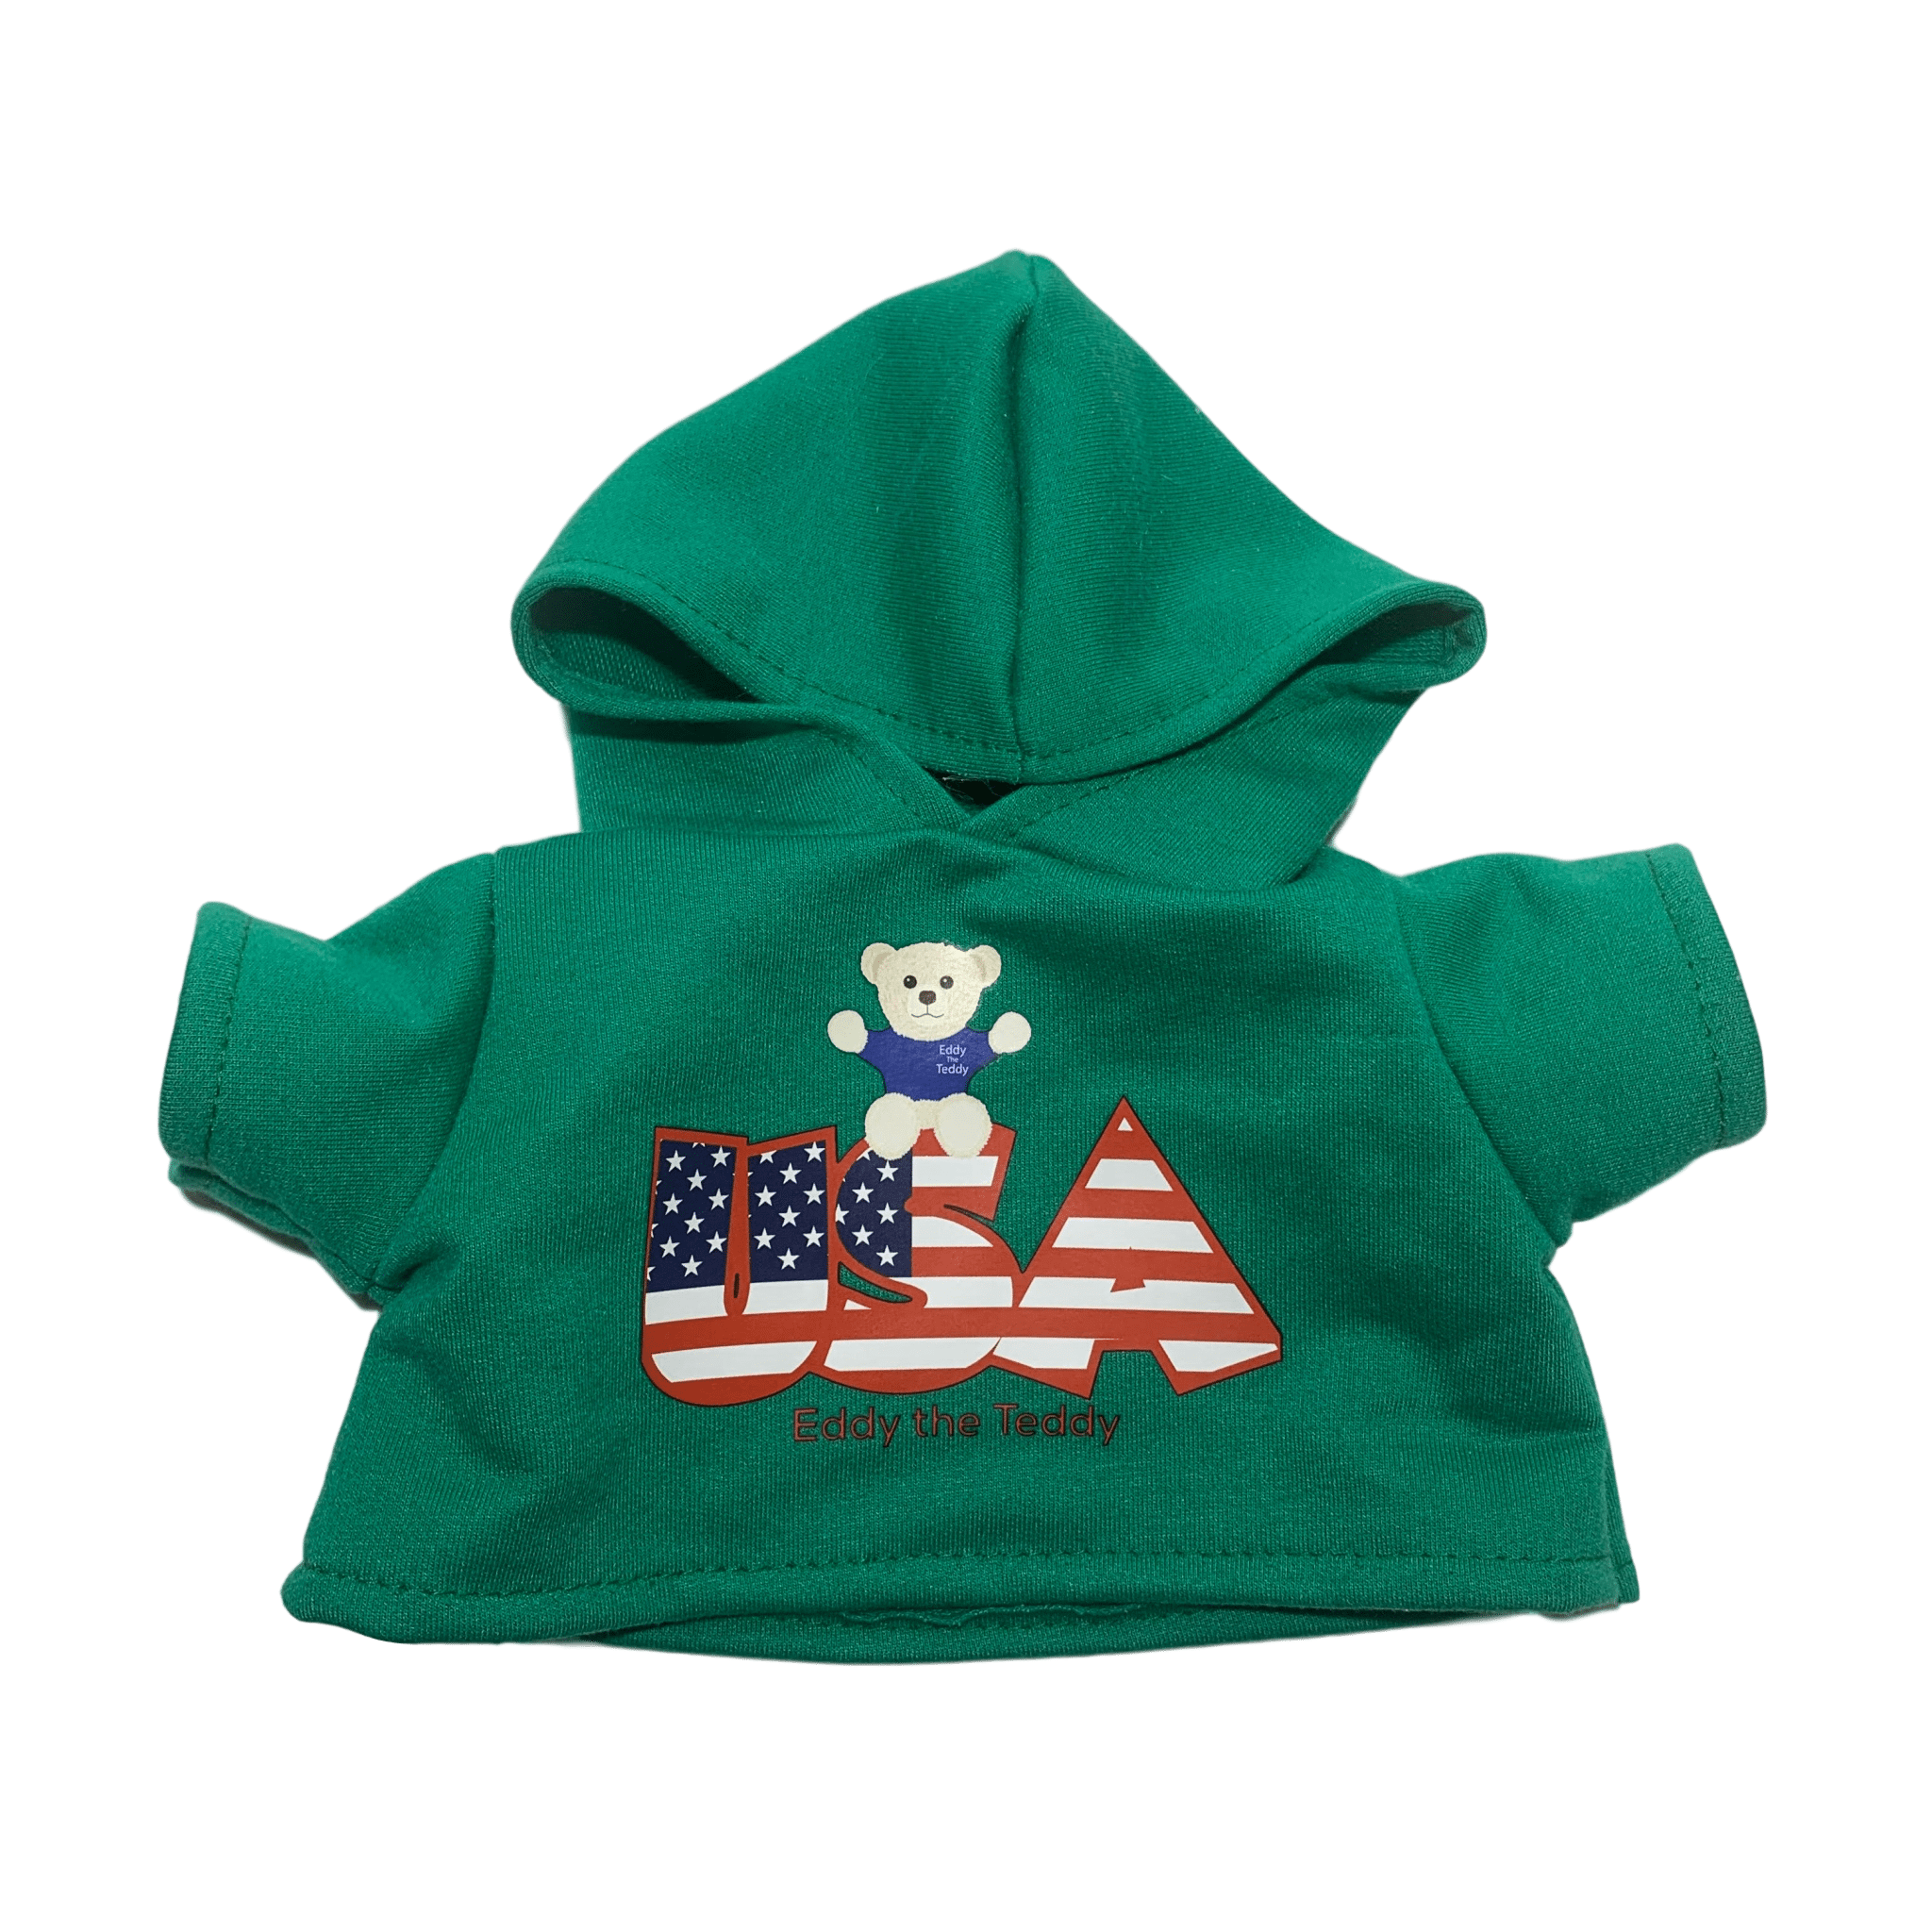 Green USA Eddy the Teddy Hoodie